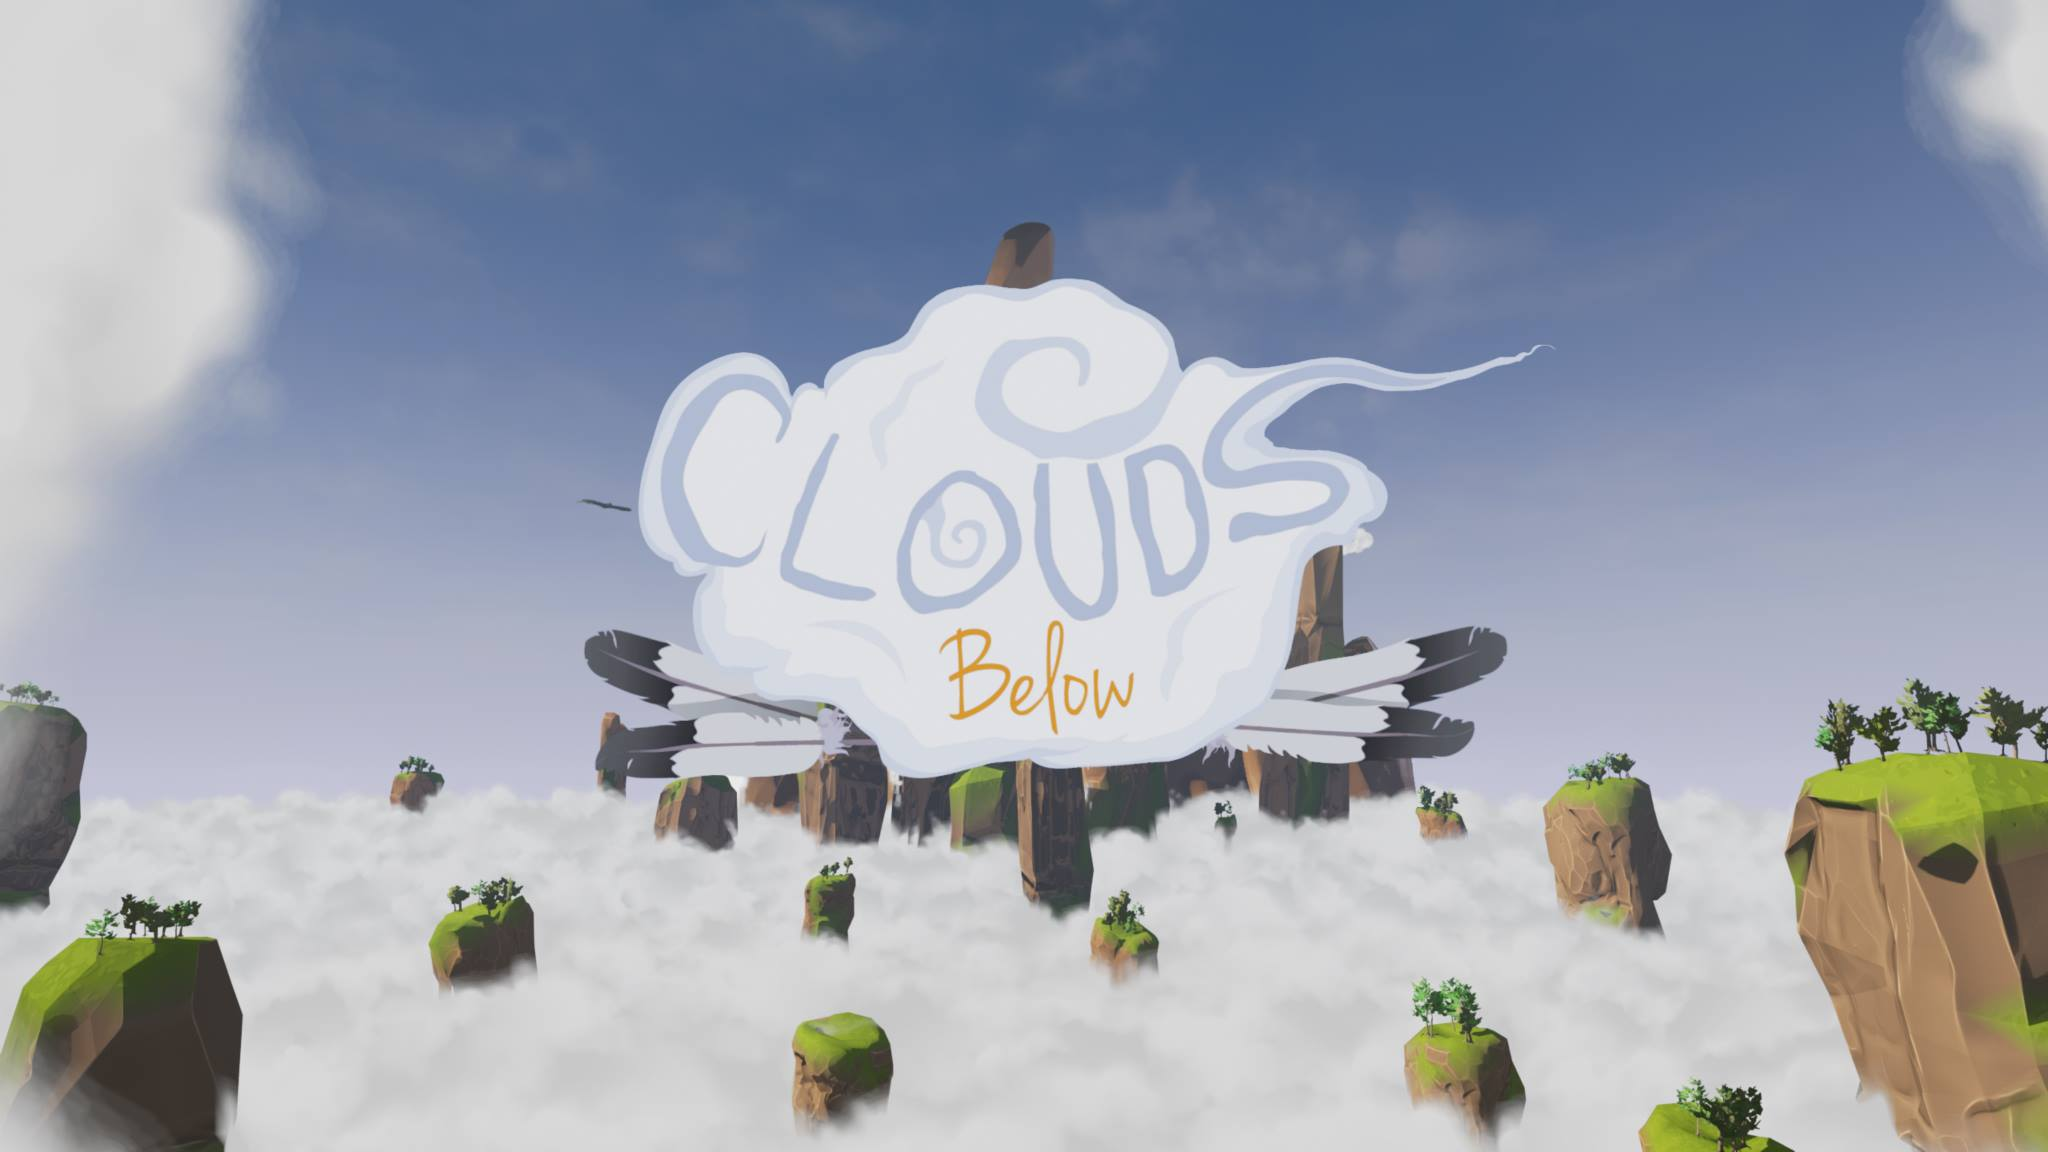 Clouds Below